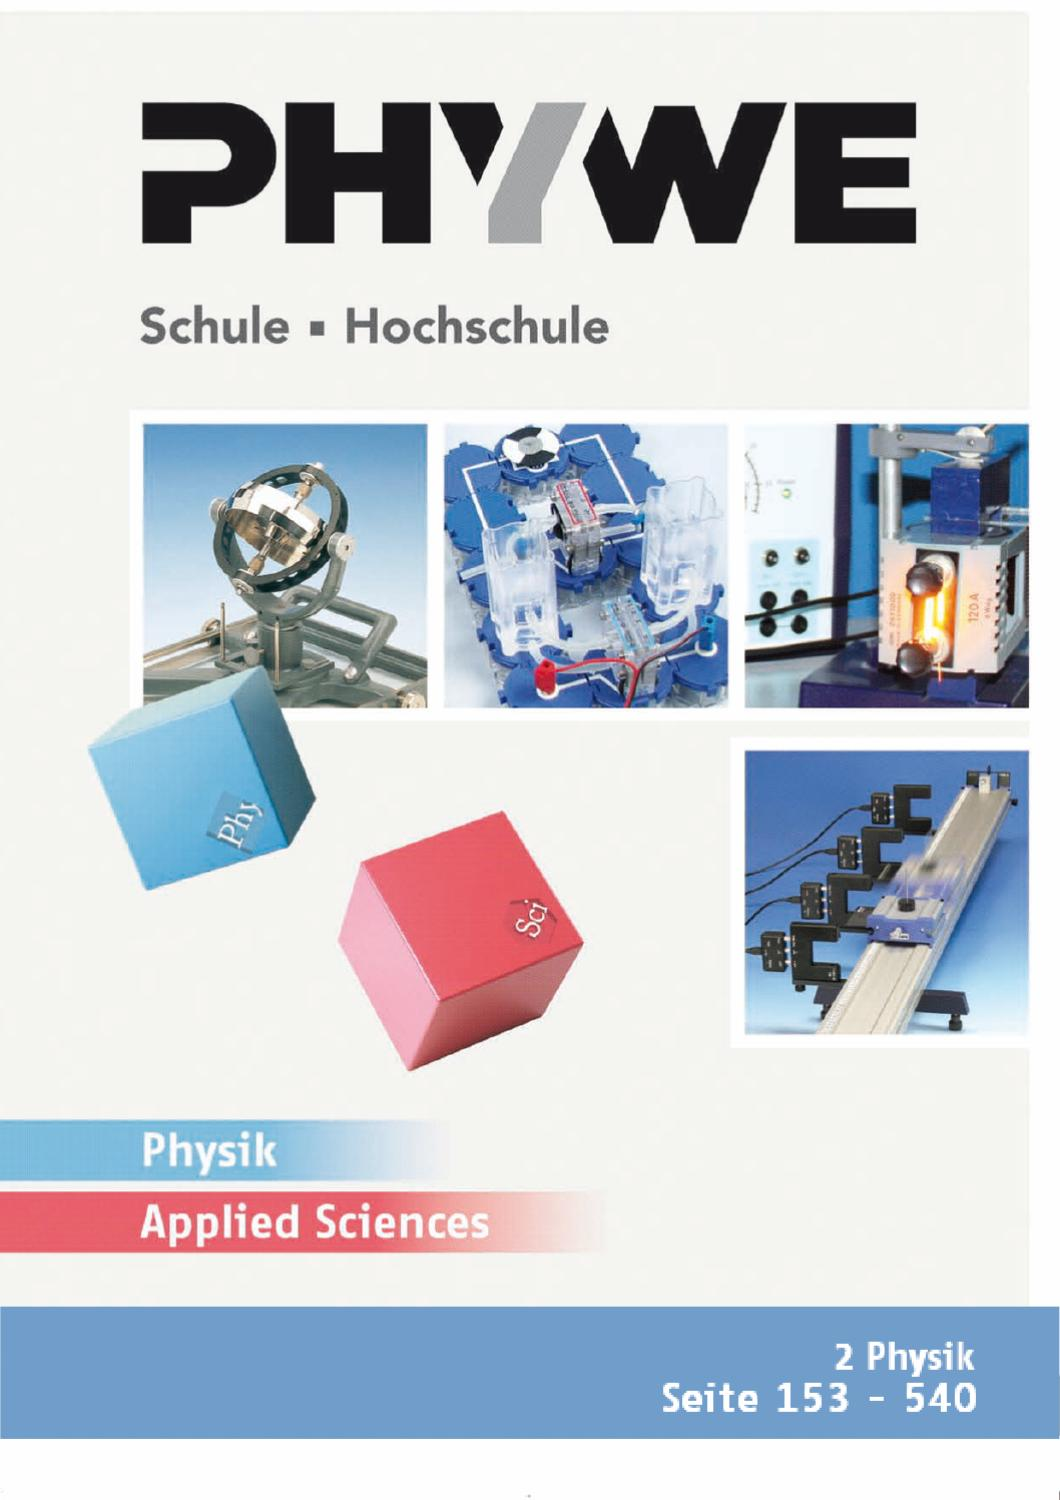 DE Kat. Physik/ApplSc - Physik by PHYWE Systeme GmbH & Co KG - issuu